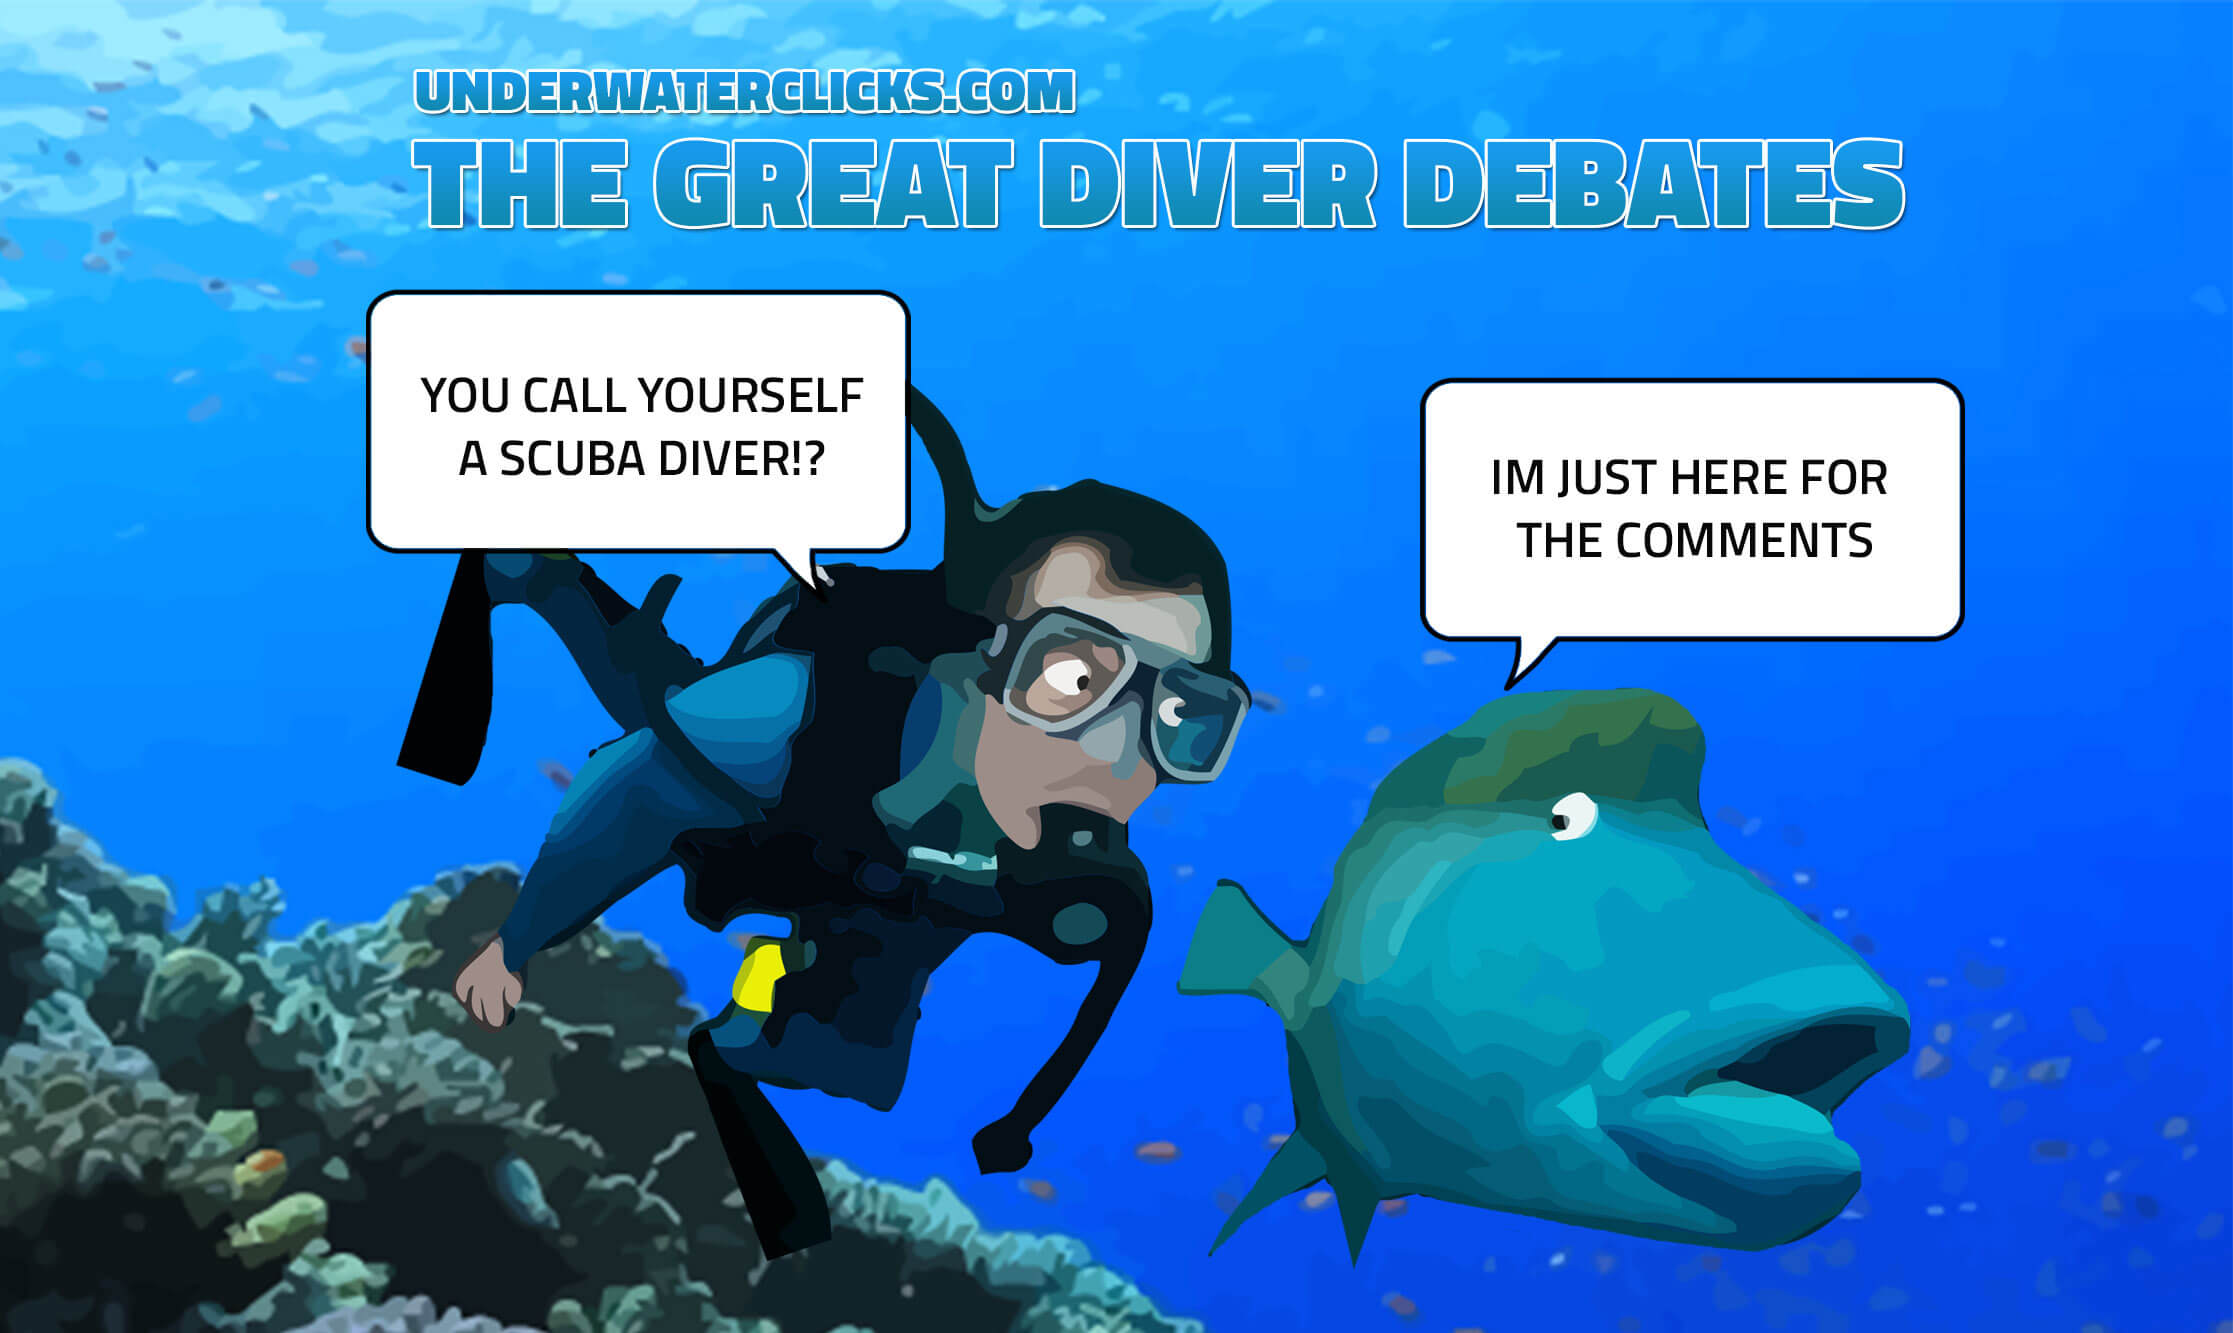 The Great Diver Debates